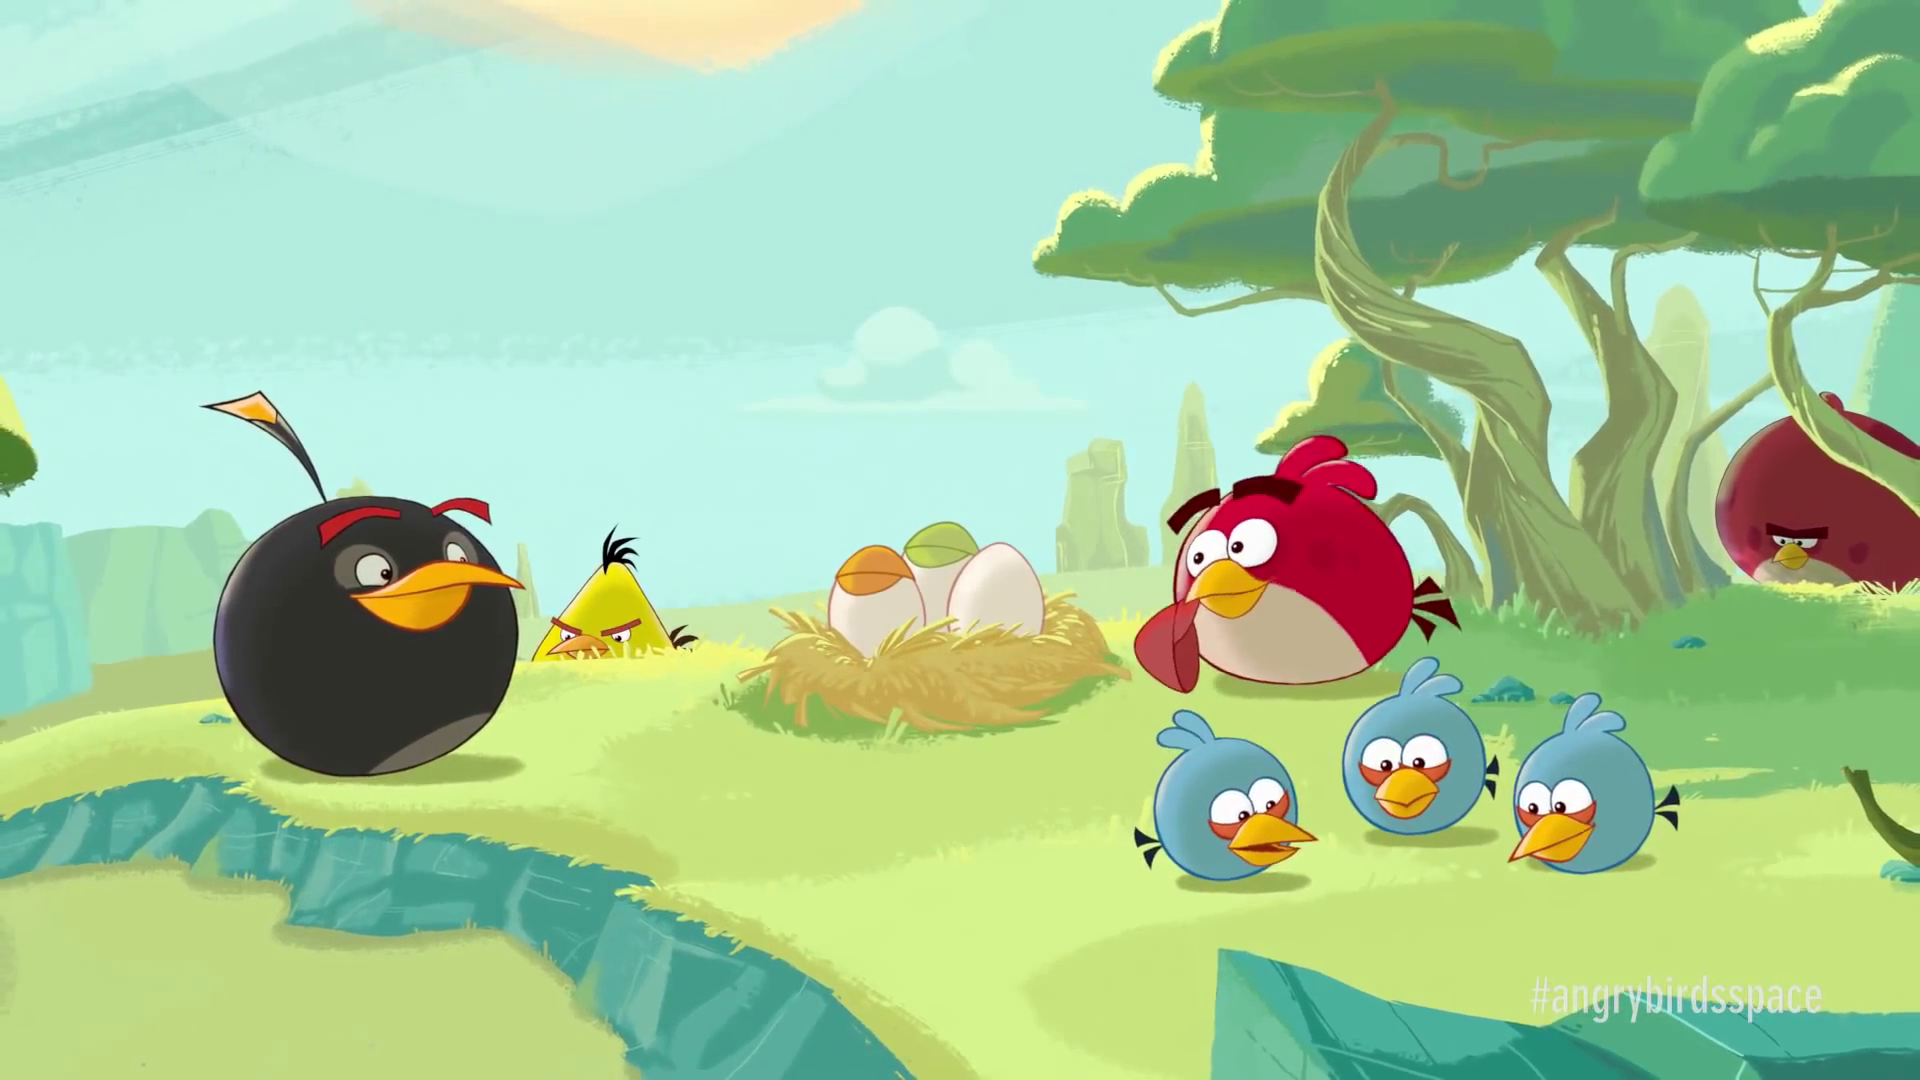 Angry birds space origins short movie angry birds wiki - Angry birds space gratuit ...